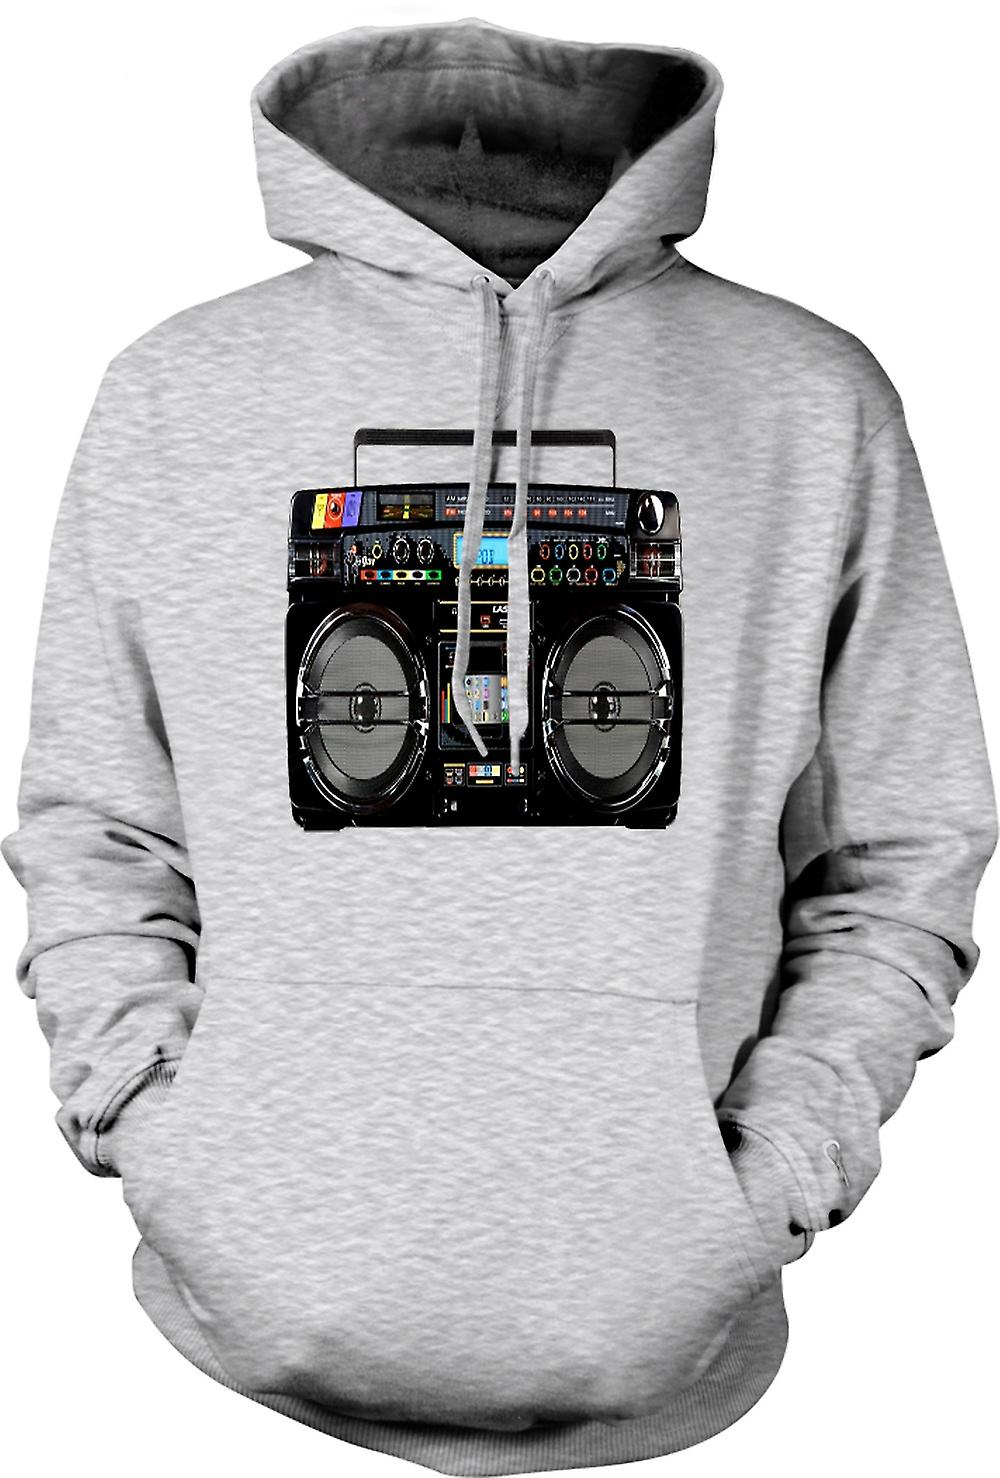 Mens Hoodie - iPod - Ghetto Boom Box